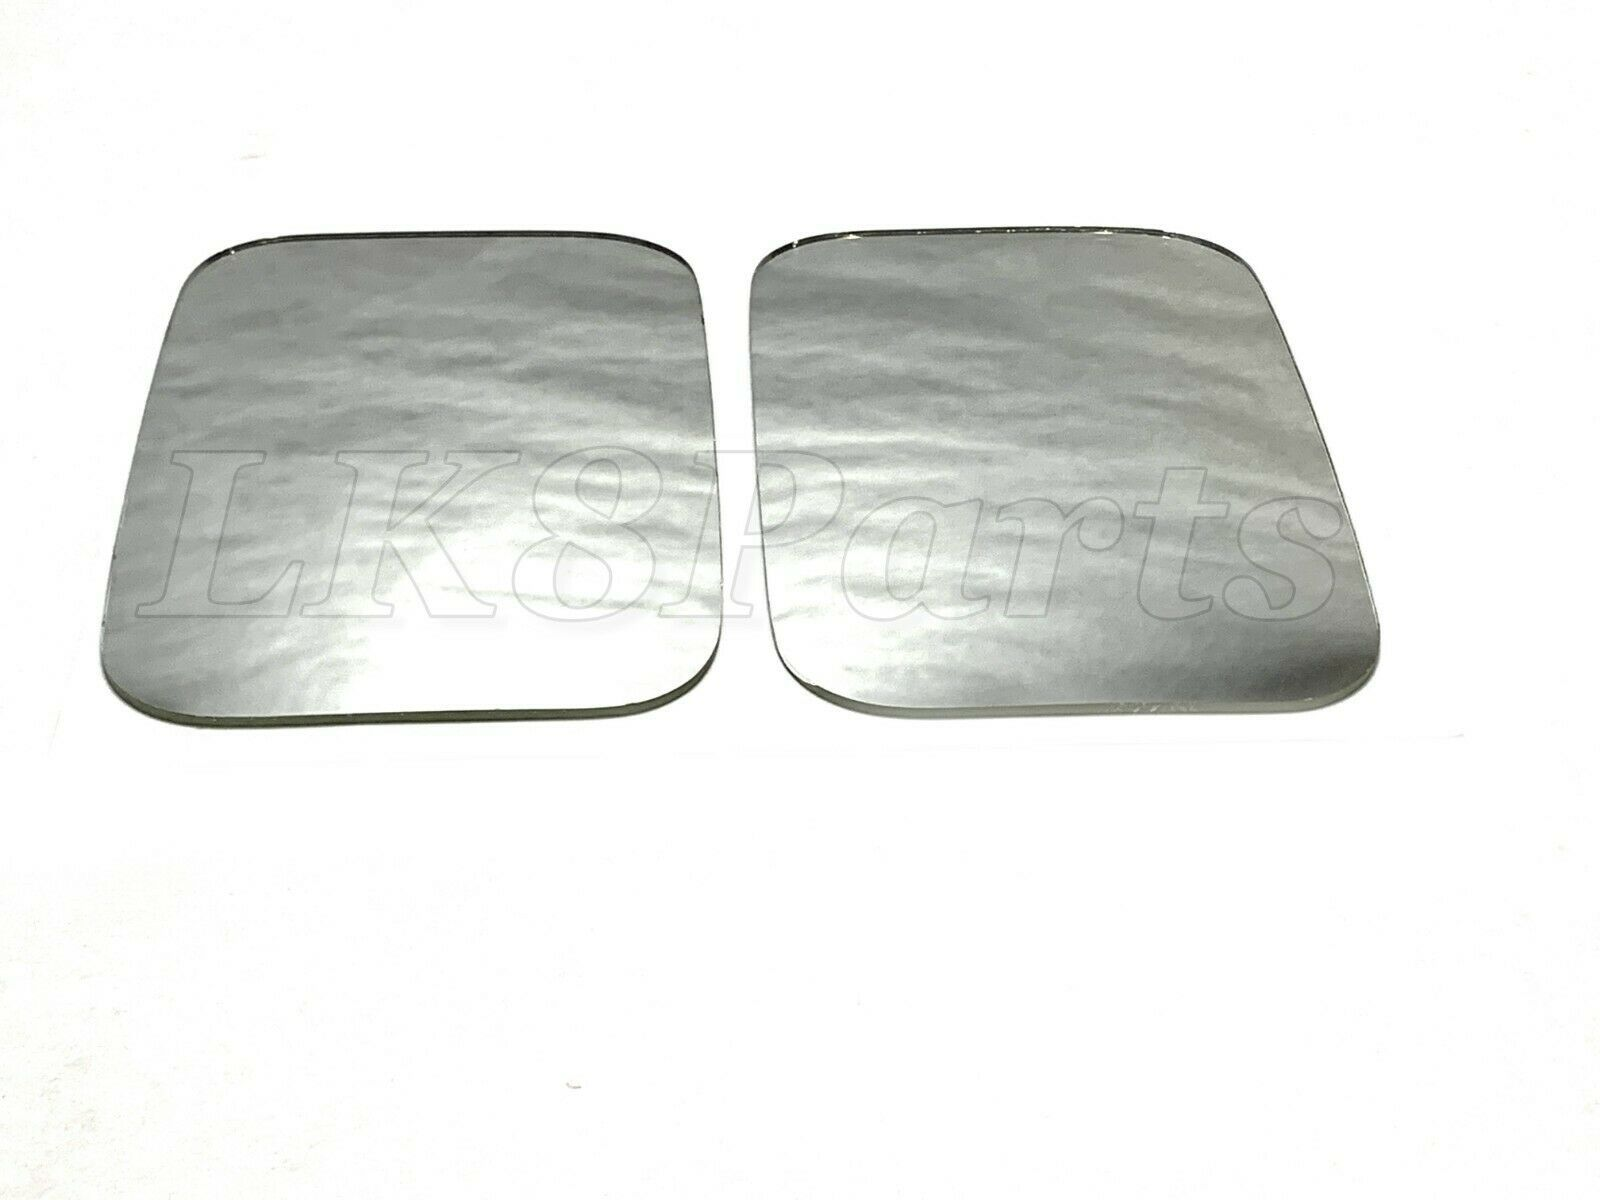 Land Rover Discovery 2 99-04 Set of 2 Mirror Glass Adaptor Adapter STC4625 New